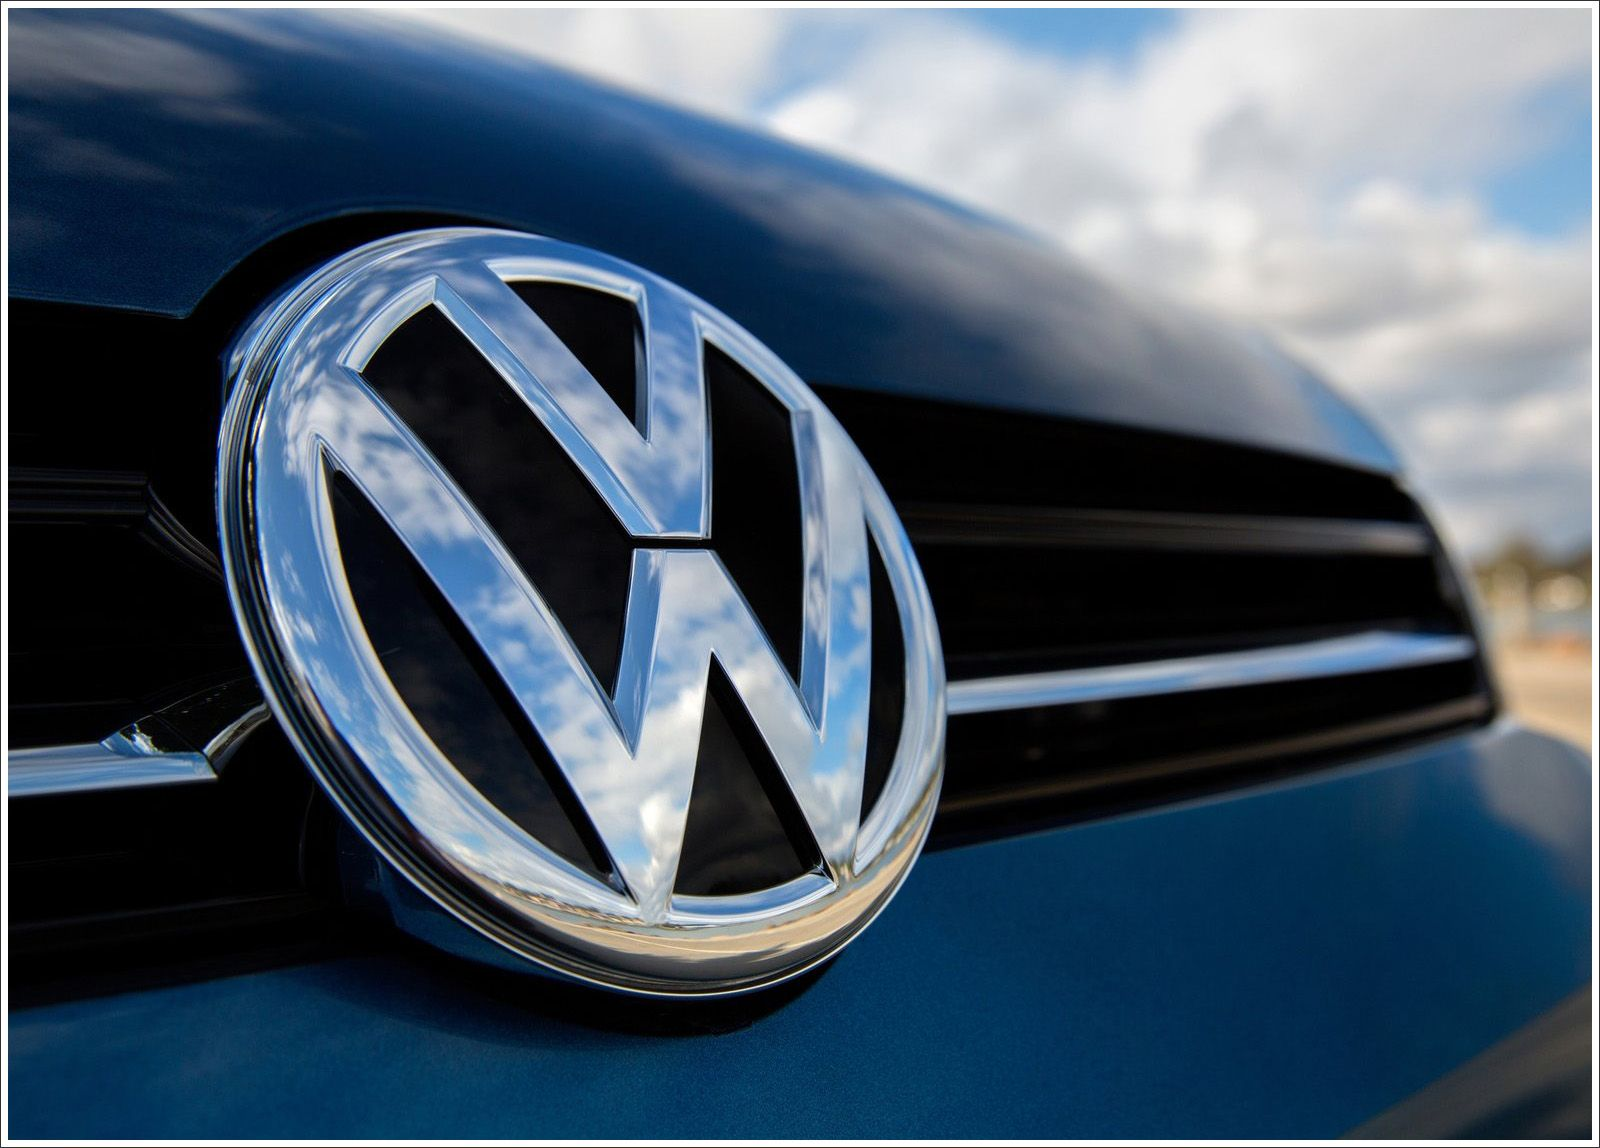 Volkswagen Logo - Volkswagen Logo Meaning and History, latest models | World Cars Brands